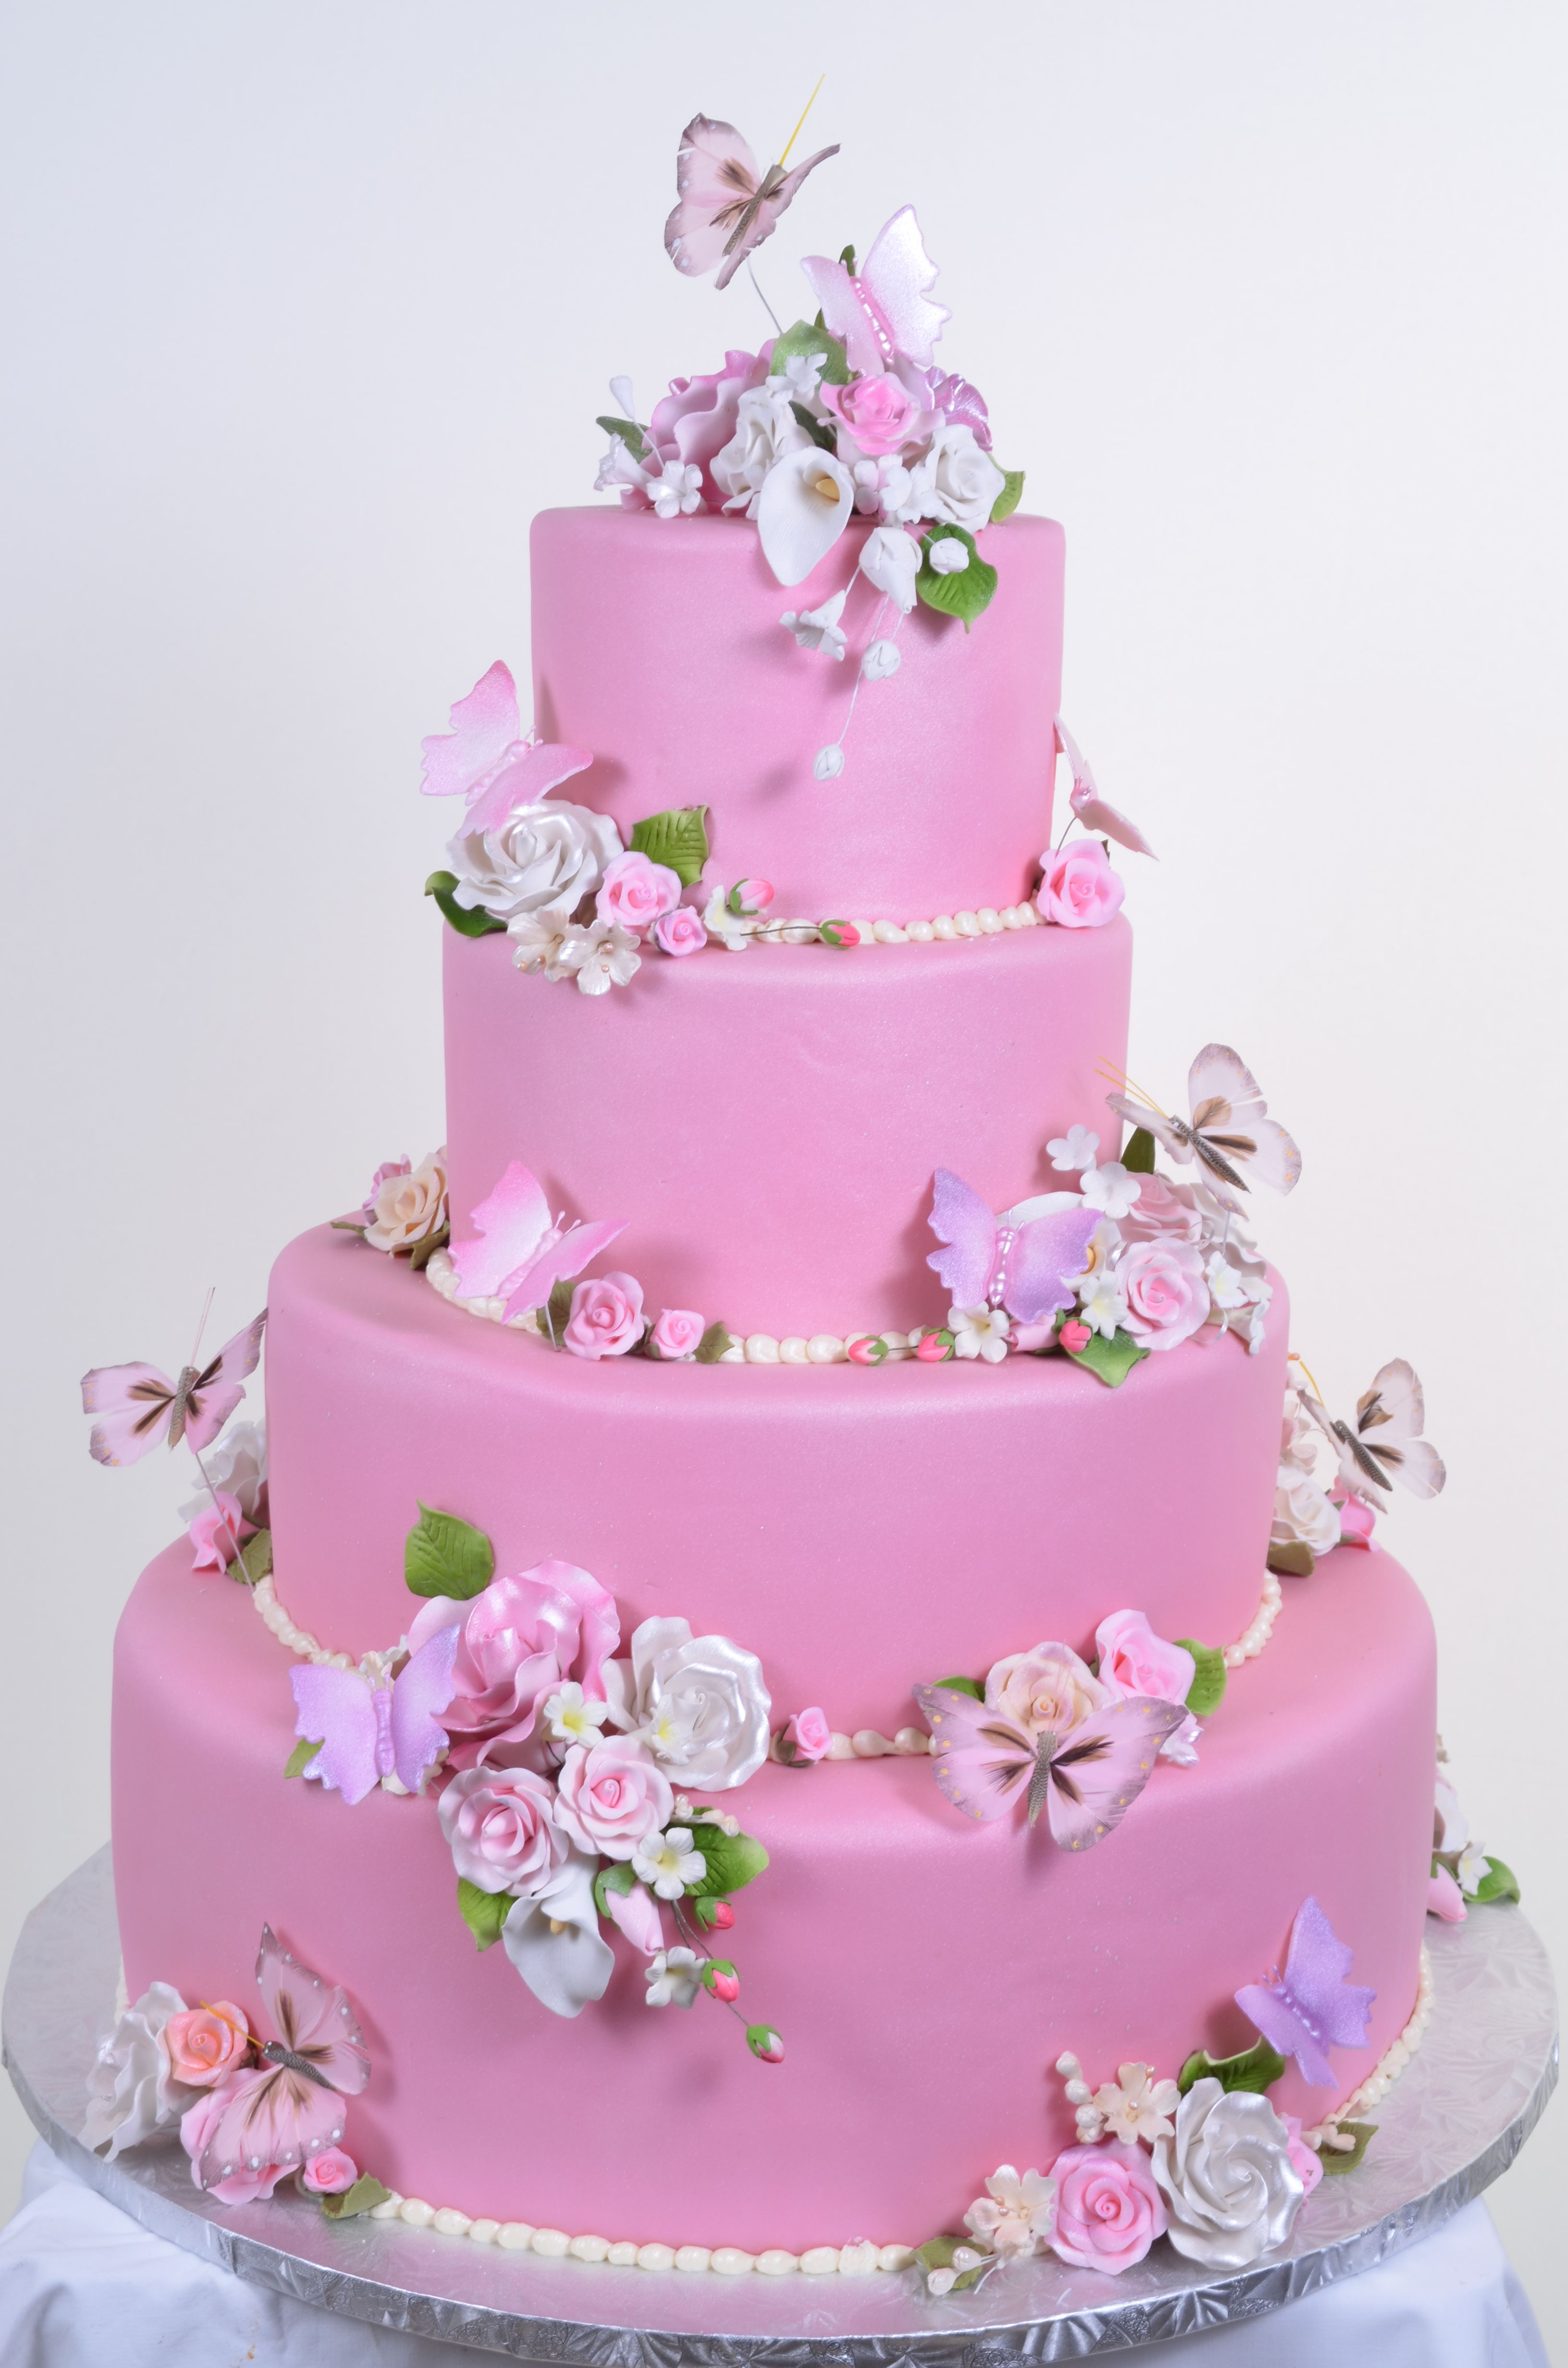 Make Your Event More Vibrant With Pink Wedding Cake Beautiful Pink